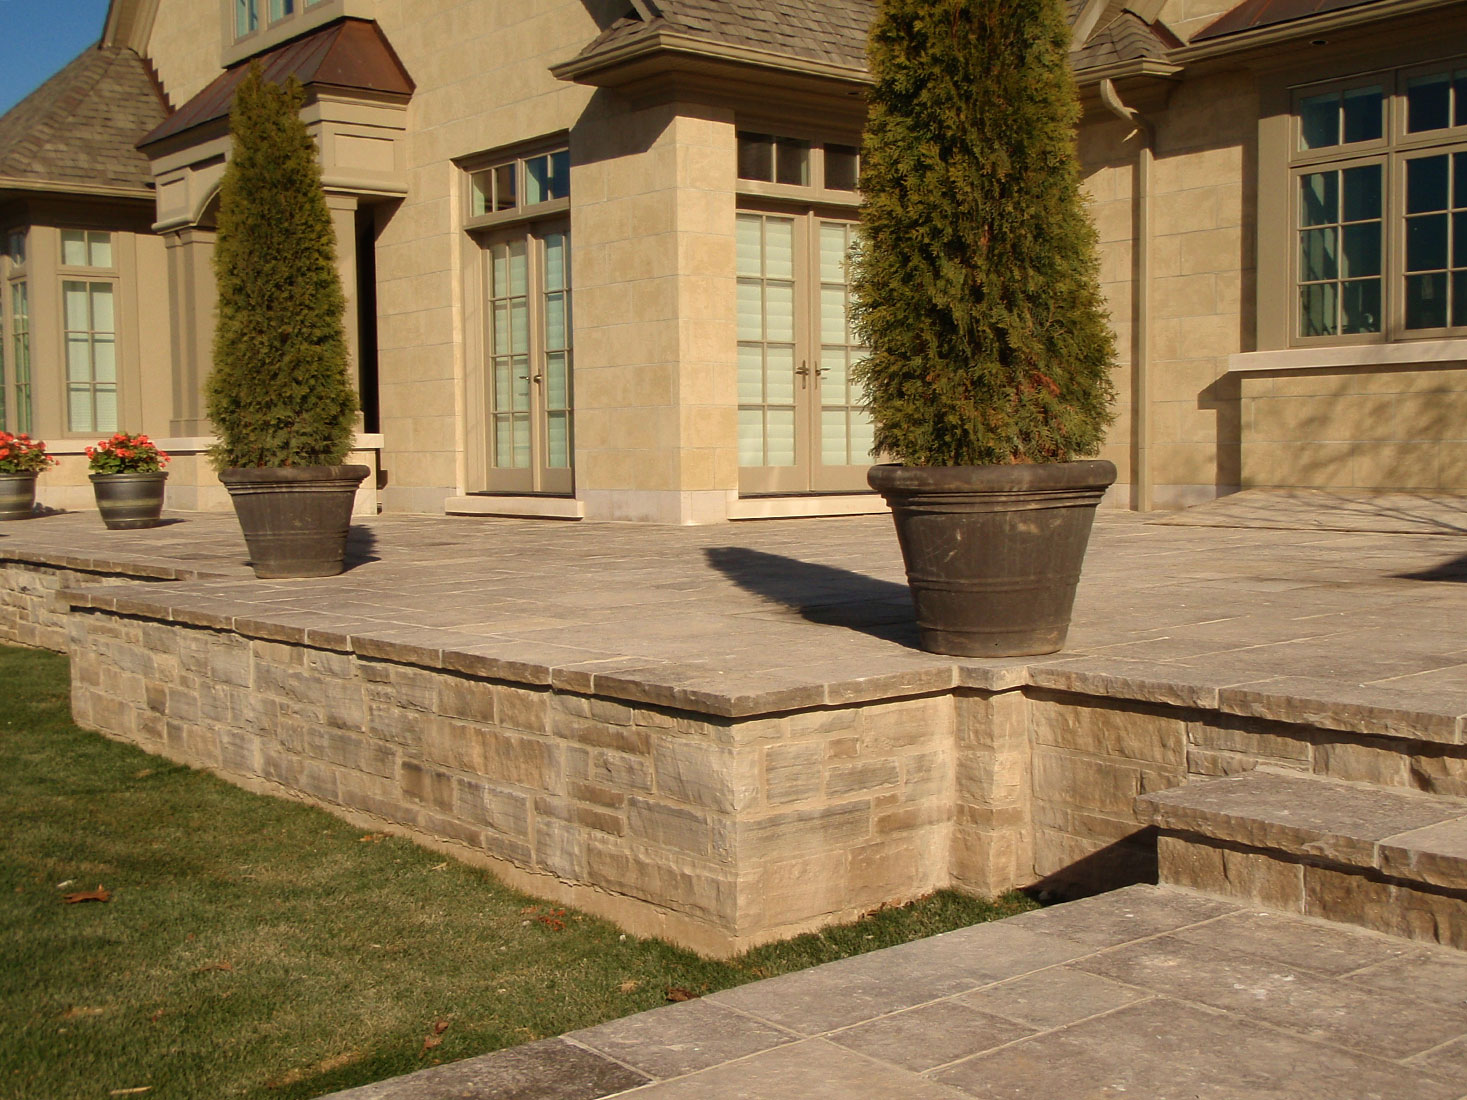 ... Raised Patio With Ebel Natural Bed Building Stone And Square Cut  Flagstone